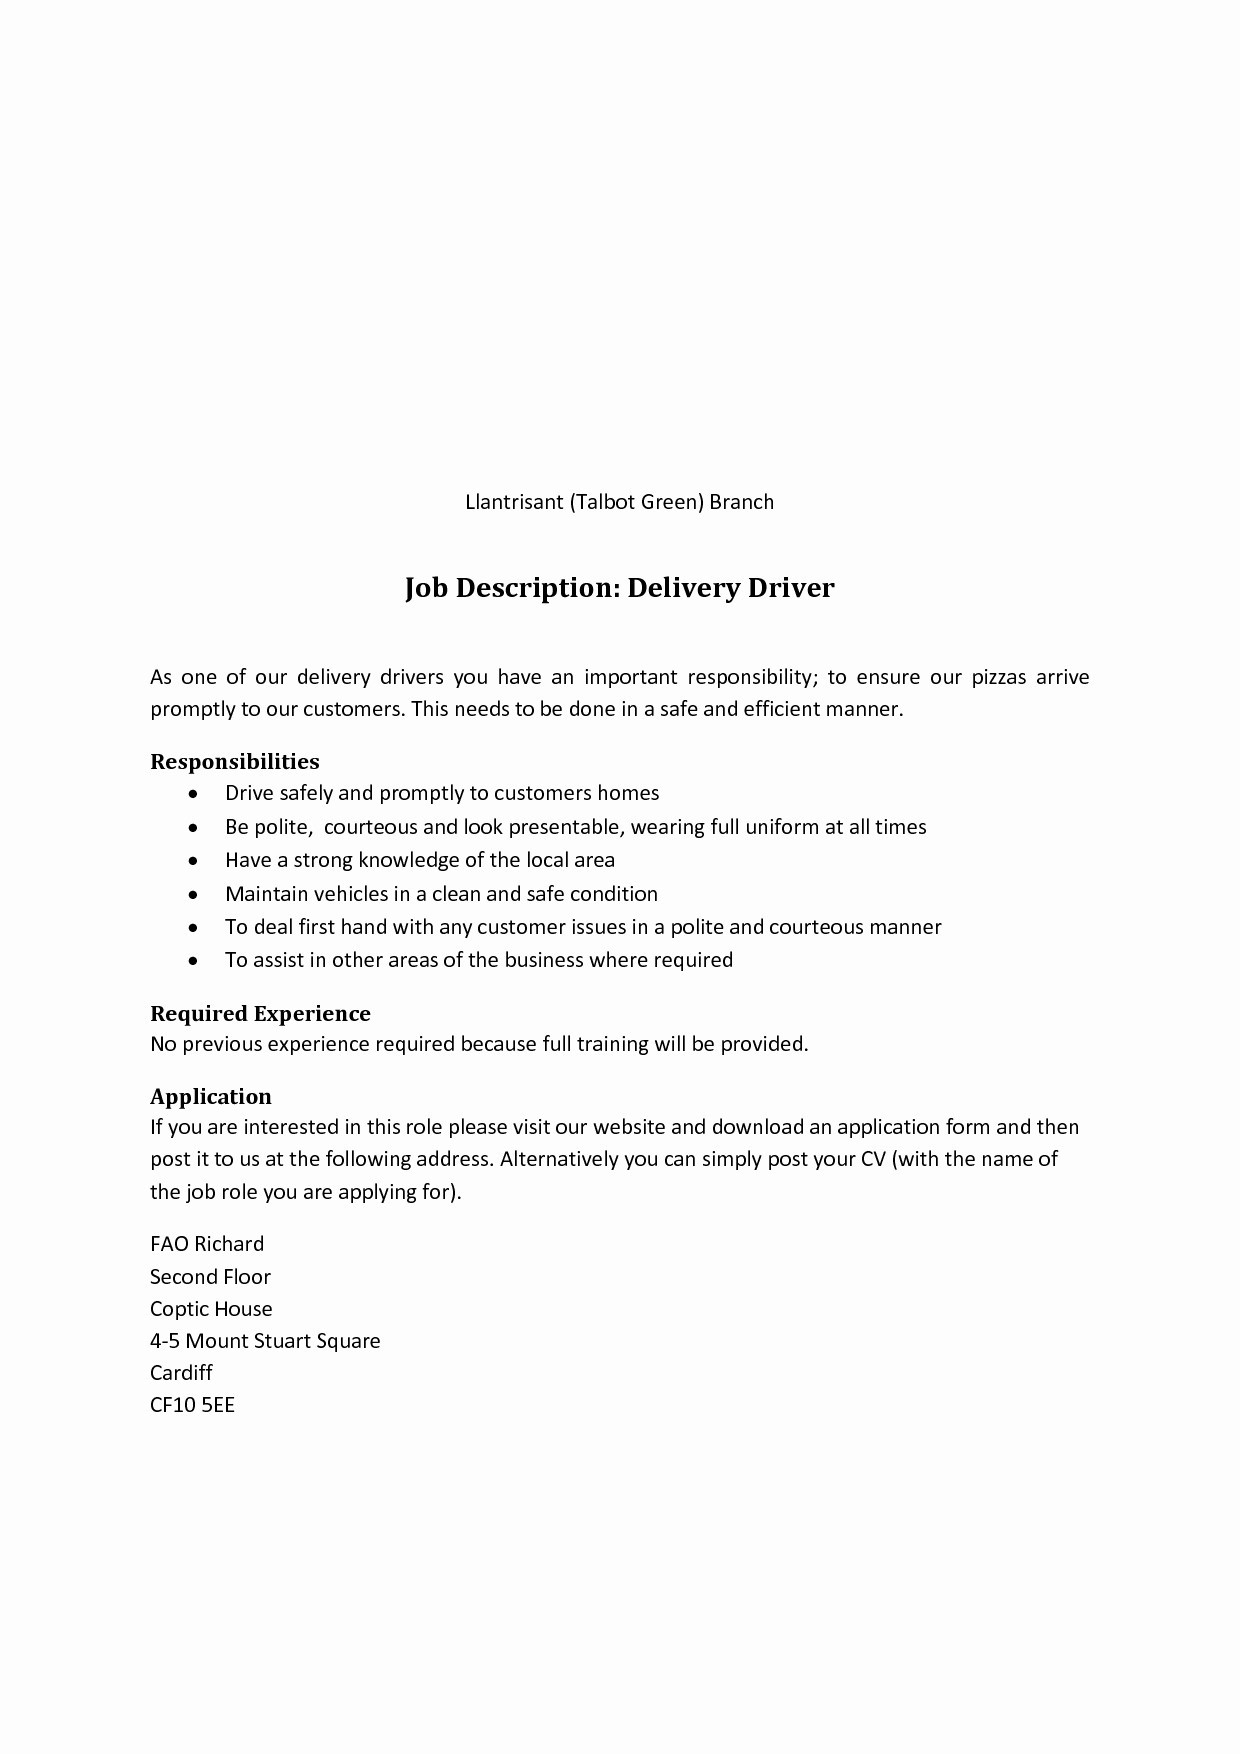 Cdl Truck Driver Job Description for Resume - 21 Cdl Truck Driver Job Description for Resume